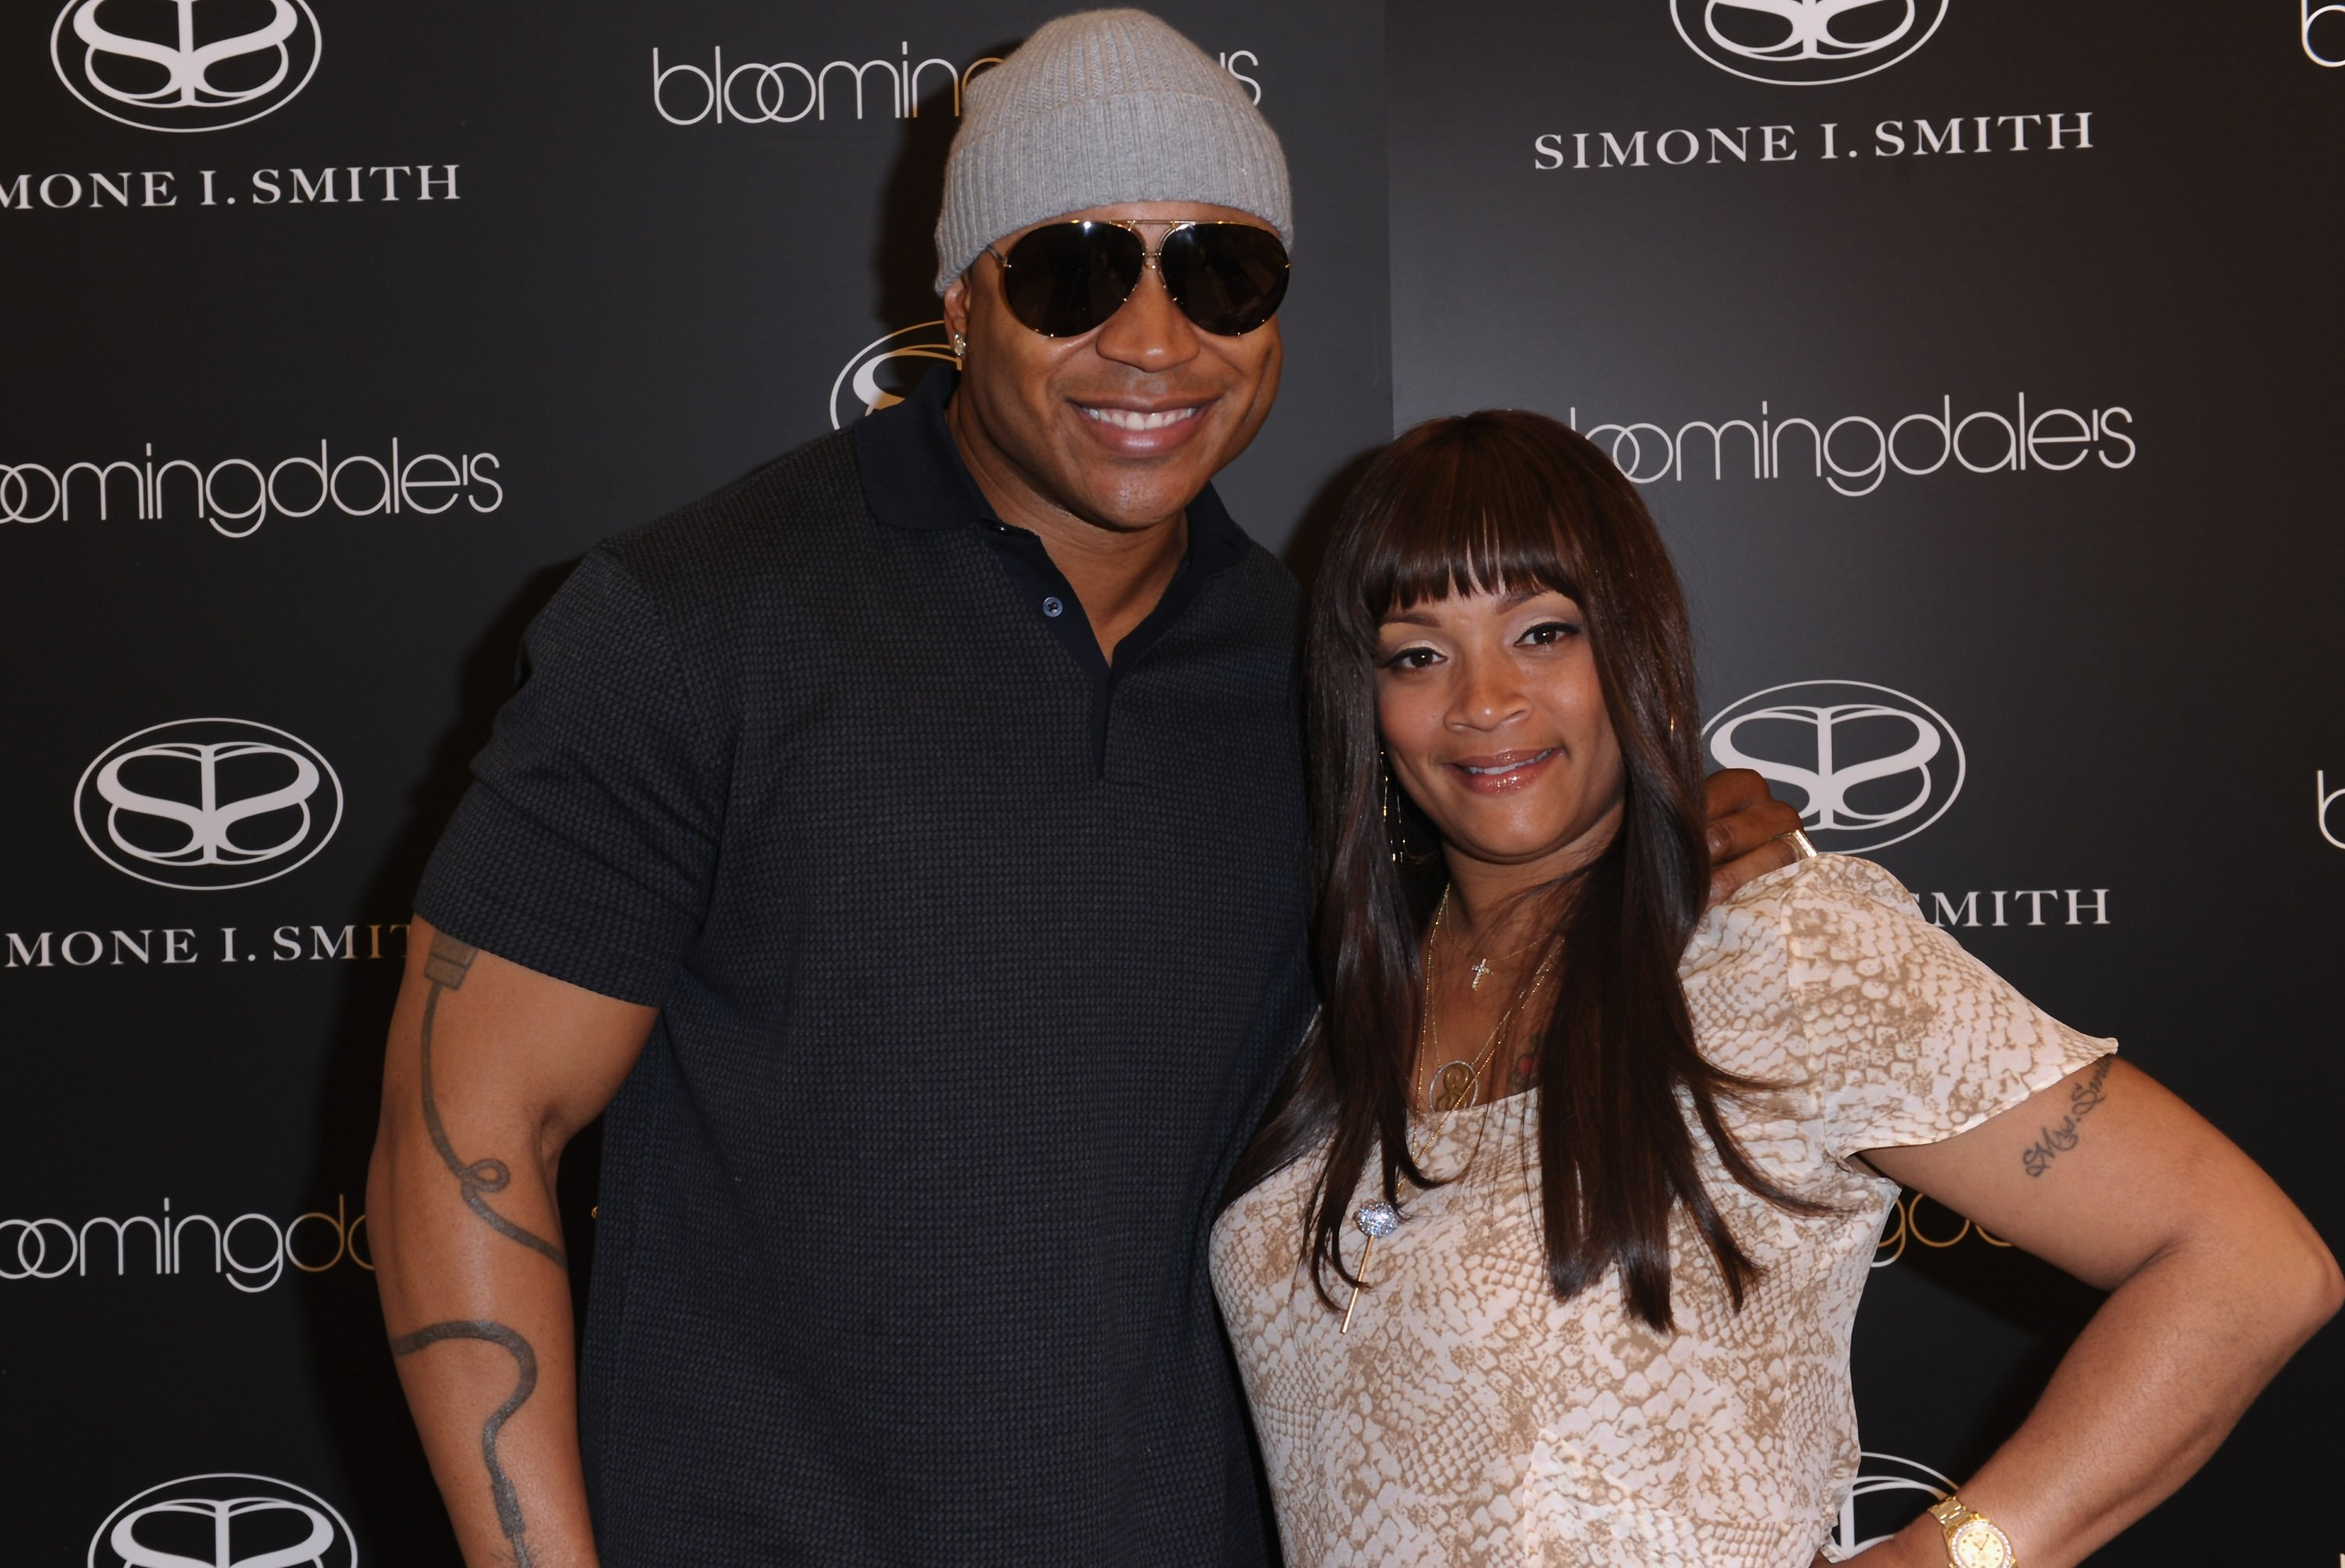 LL Cool J and designer Simone I. Smith at her personal appearance for Bloomingdale's on May 12, 2011 in Century City, California.  Source: Getty Images